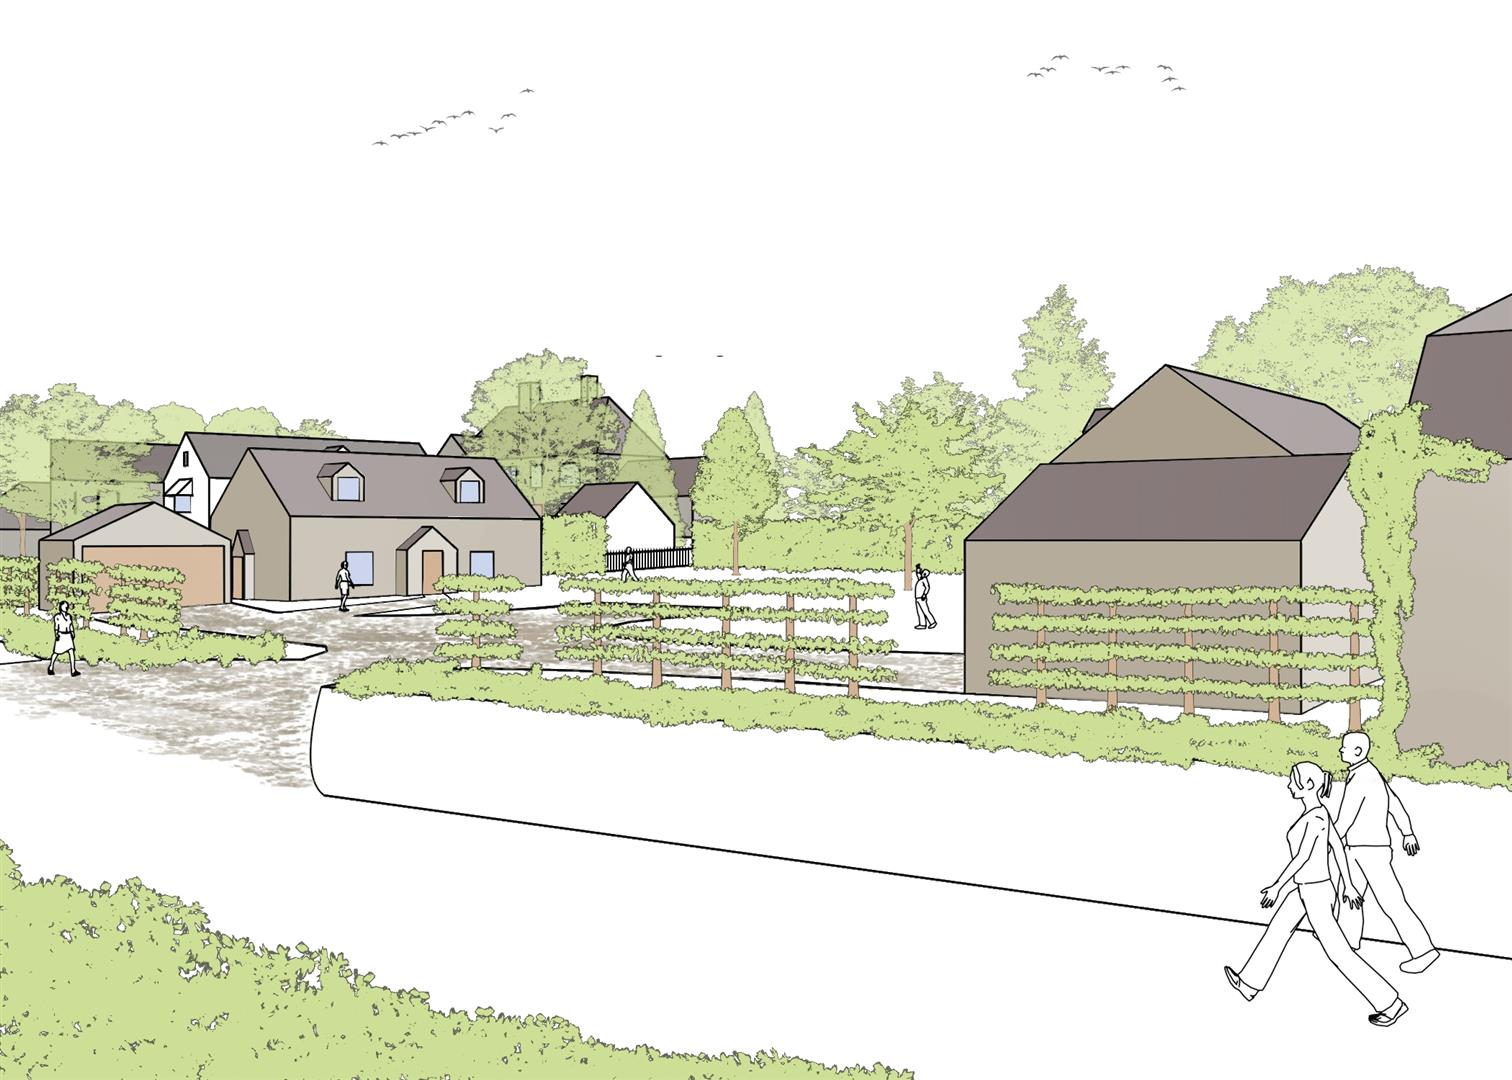 Floorplans For PLANNING GRANTED - 2 DETACHED HOUSES